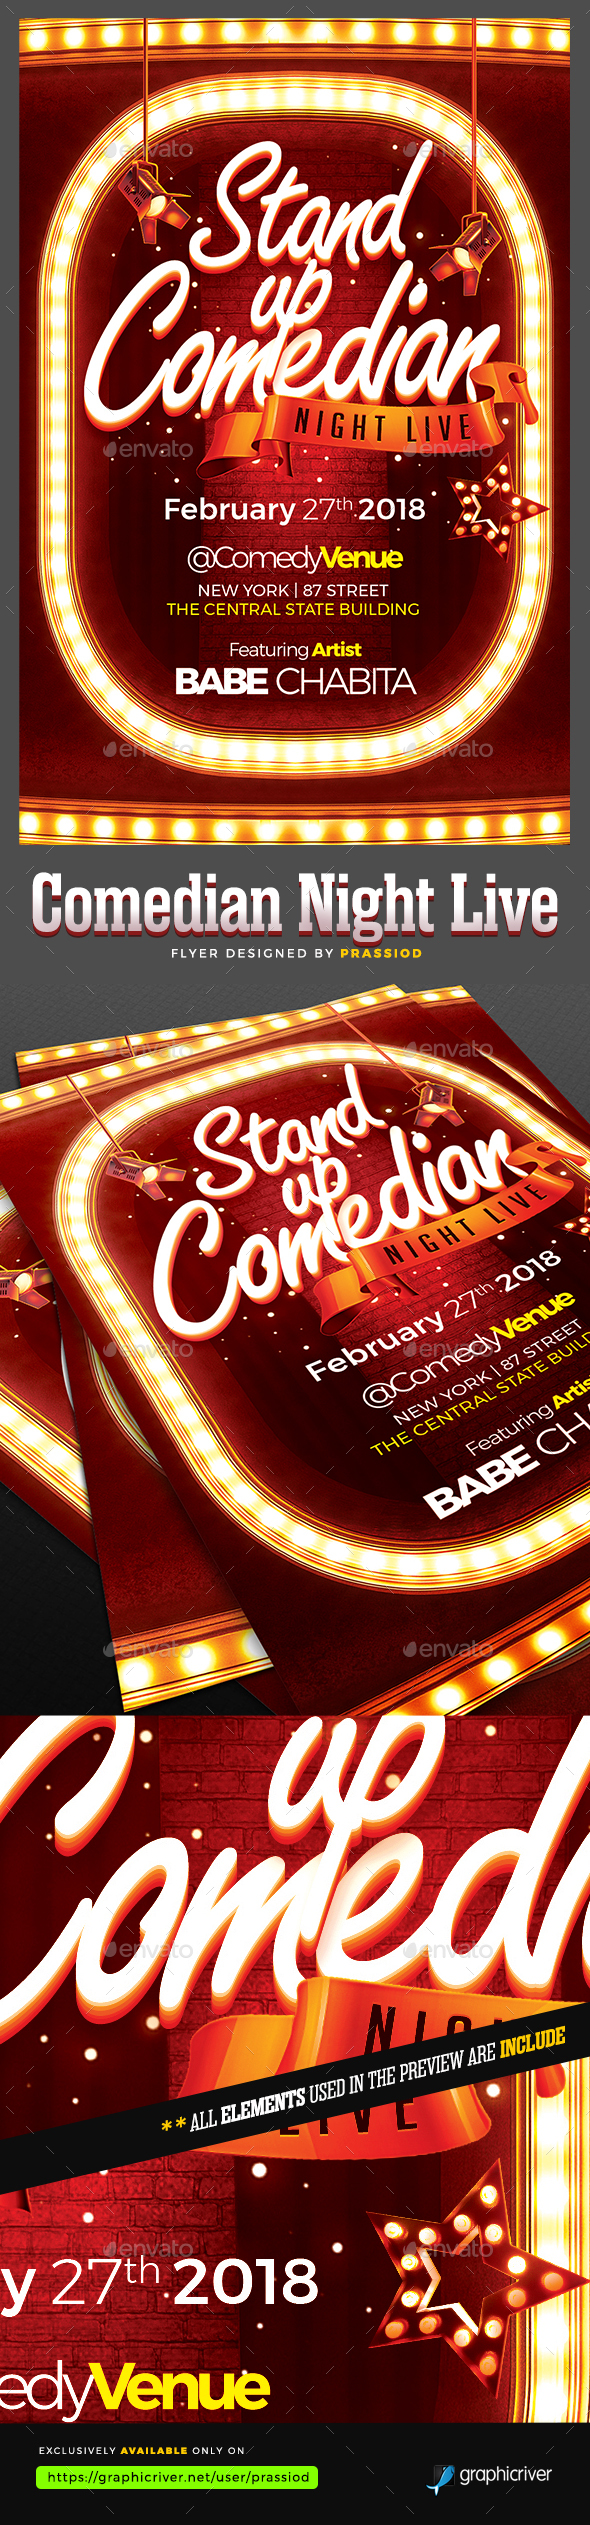 Comedian Night Live Flyer Template - Clubs & Parties Events